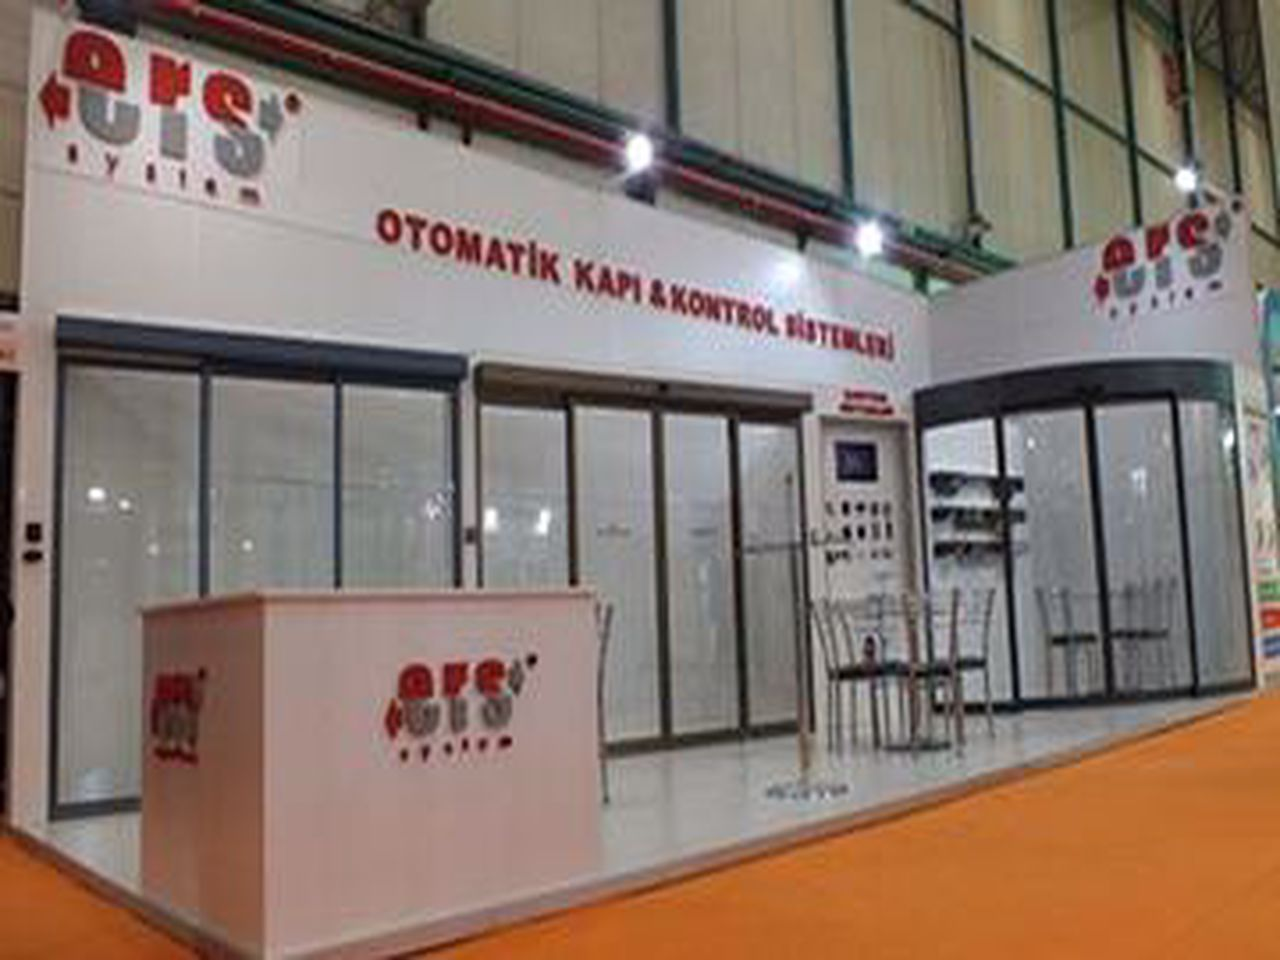 We were at the 2013 Istanbul TUYAP Door Fair.